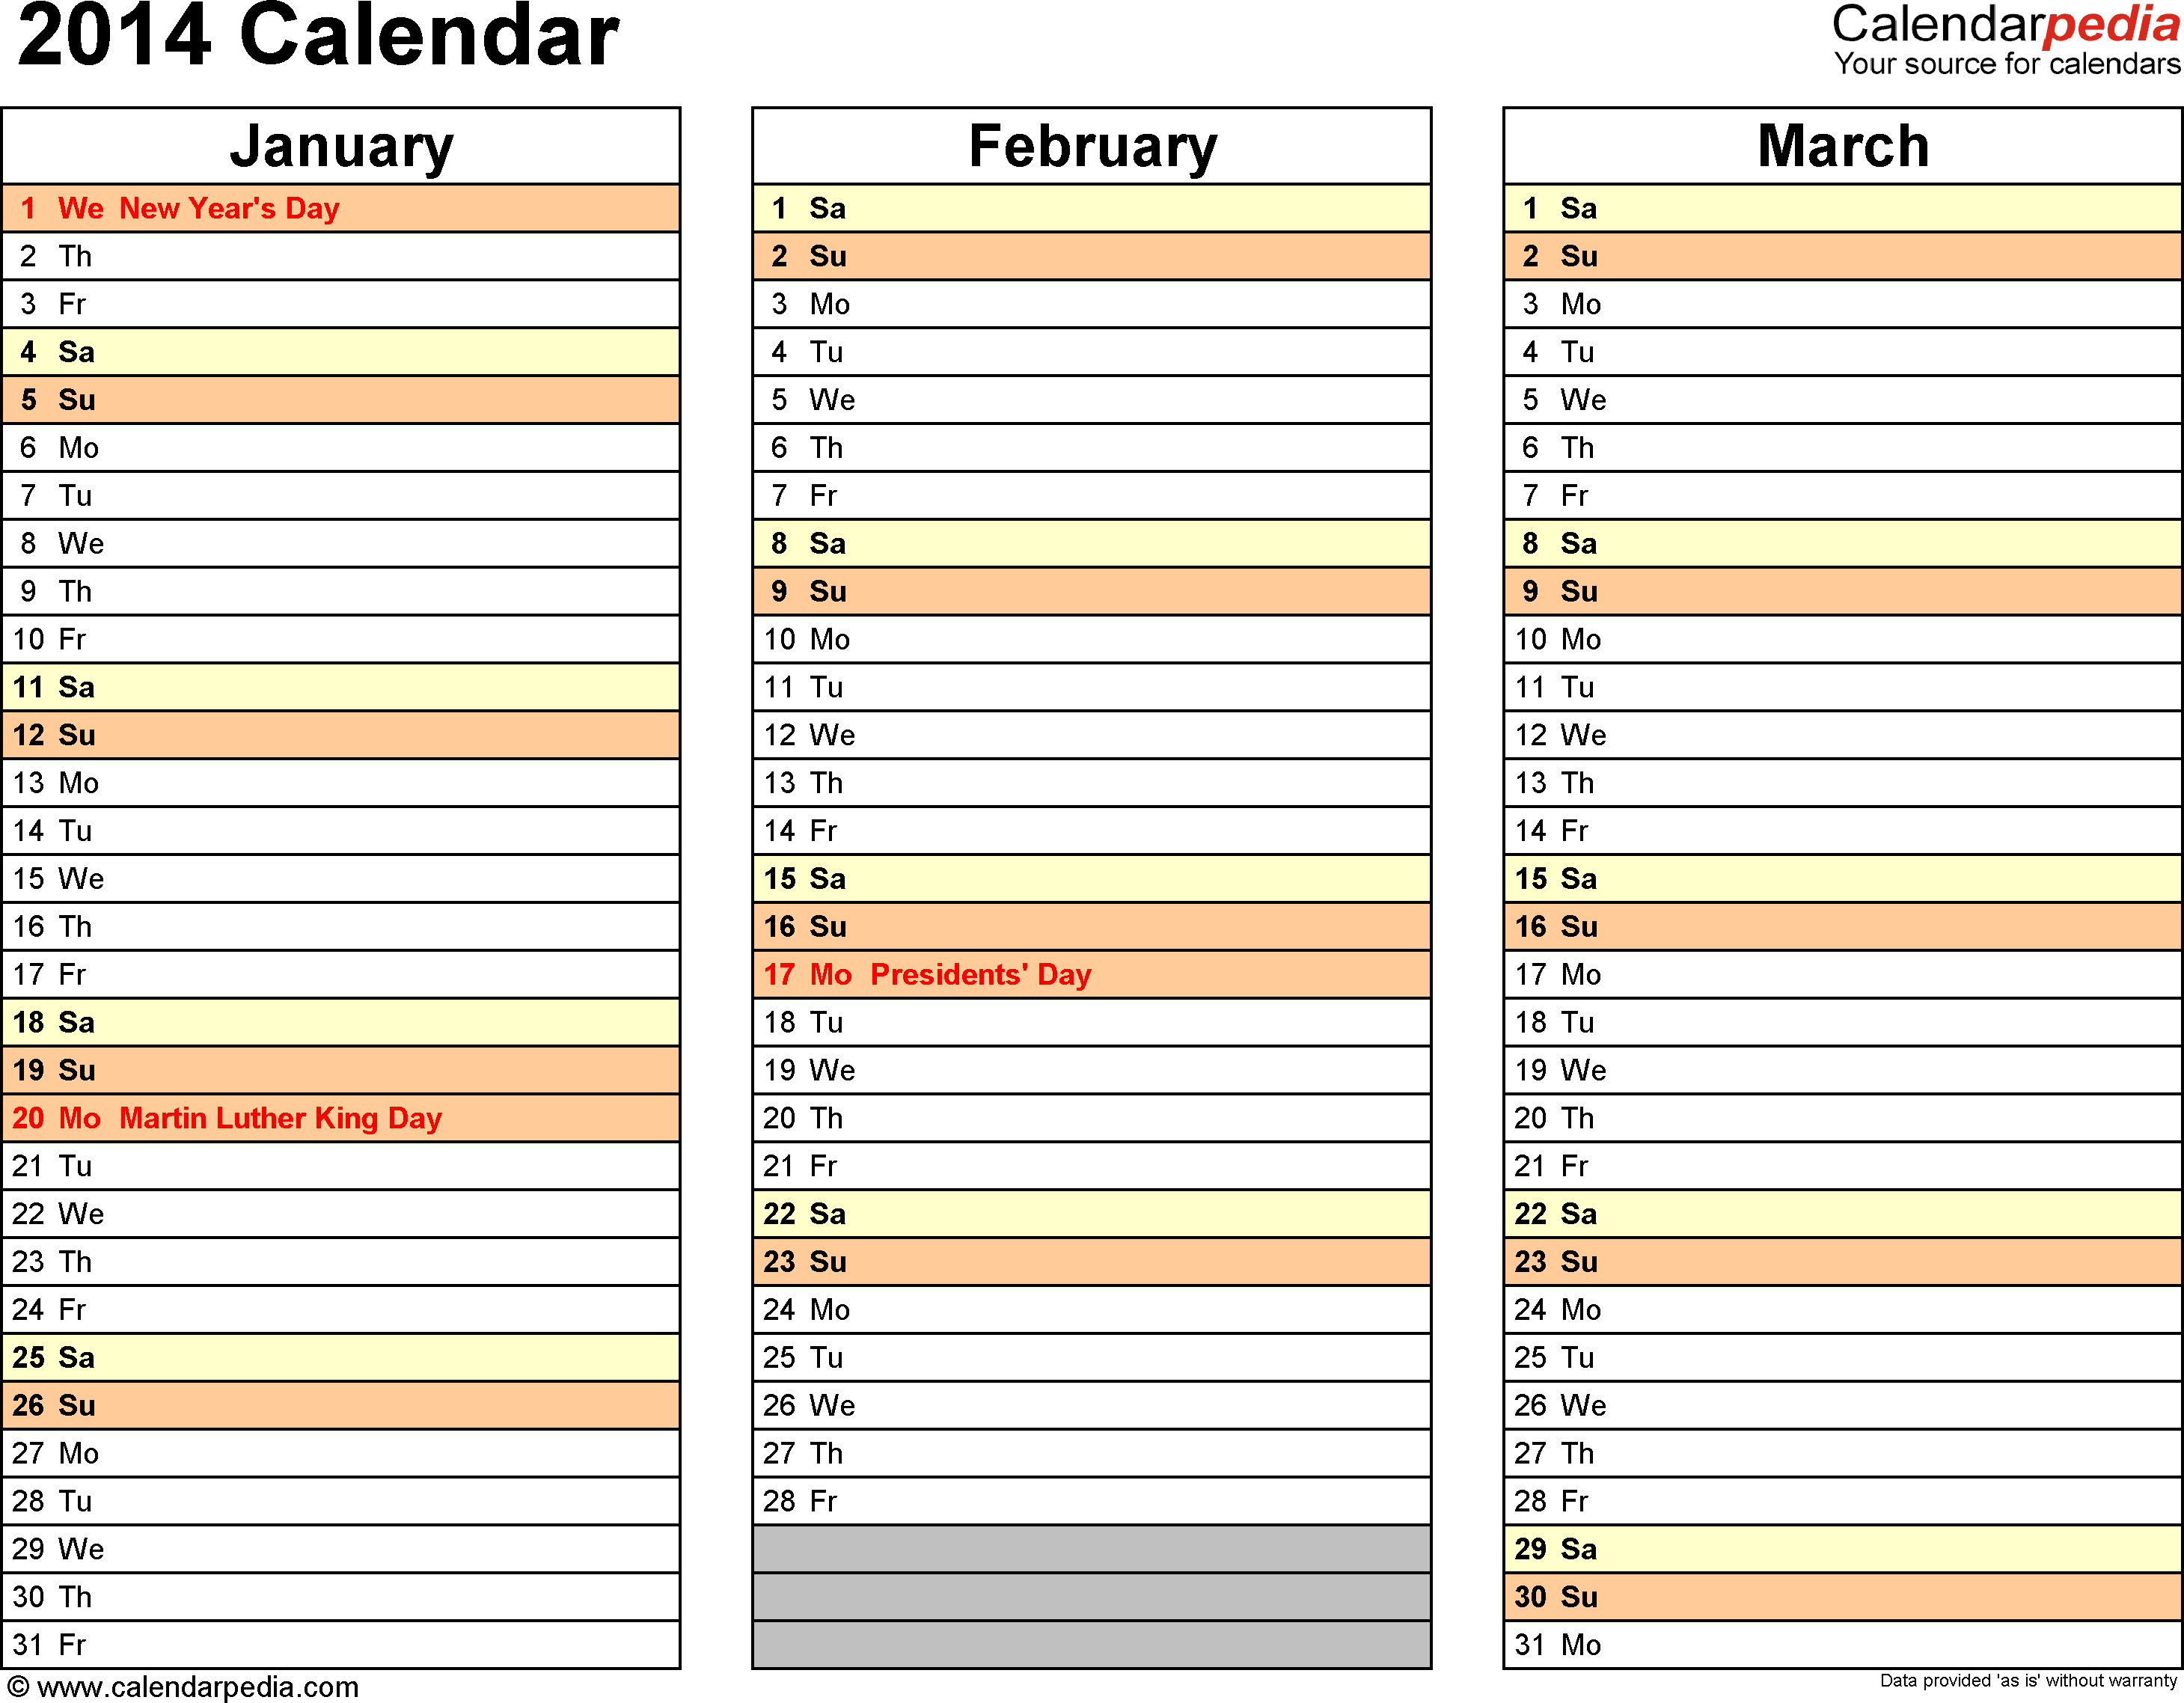 Template 5: 2014 Calendar for Excel, landscape orientation, months horizontally, 4 pages